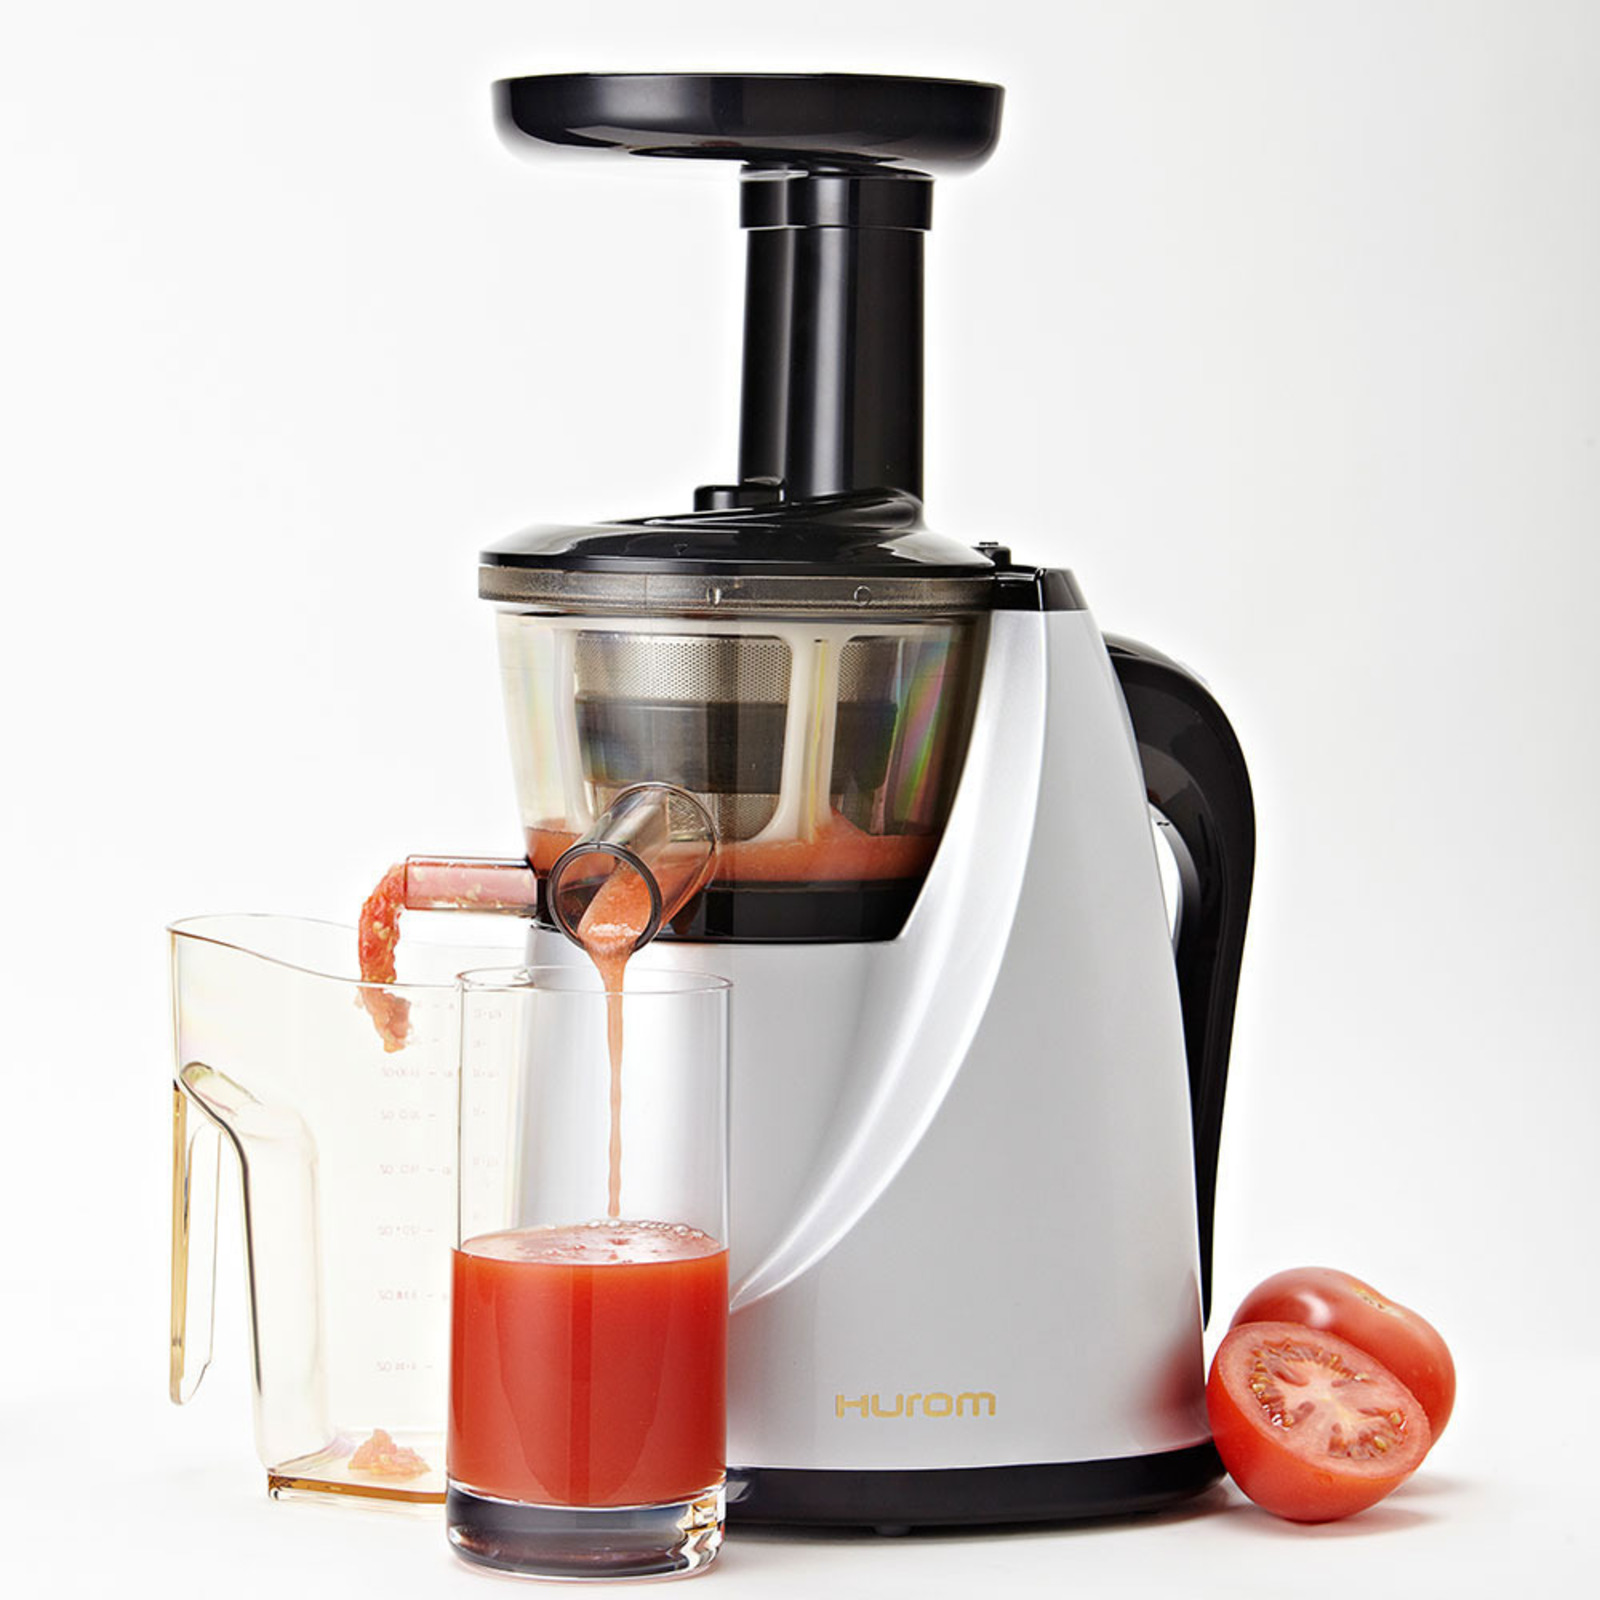 Best Home Slow Juicer : Slow Juicer - Cool Hunting